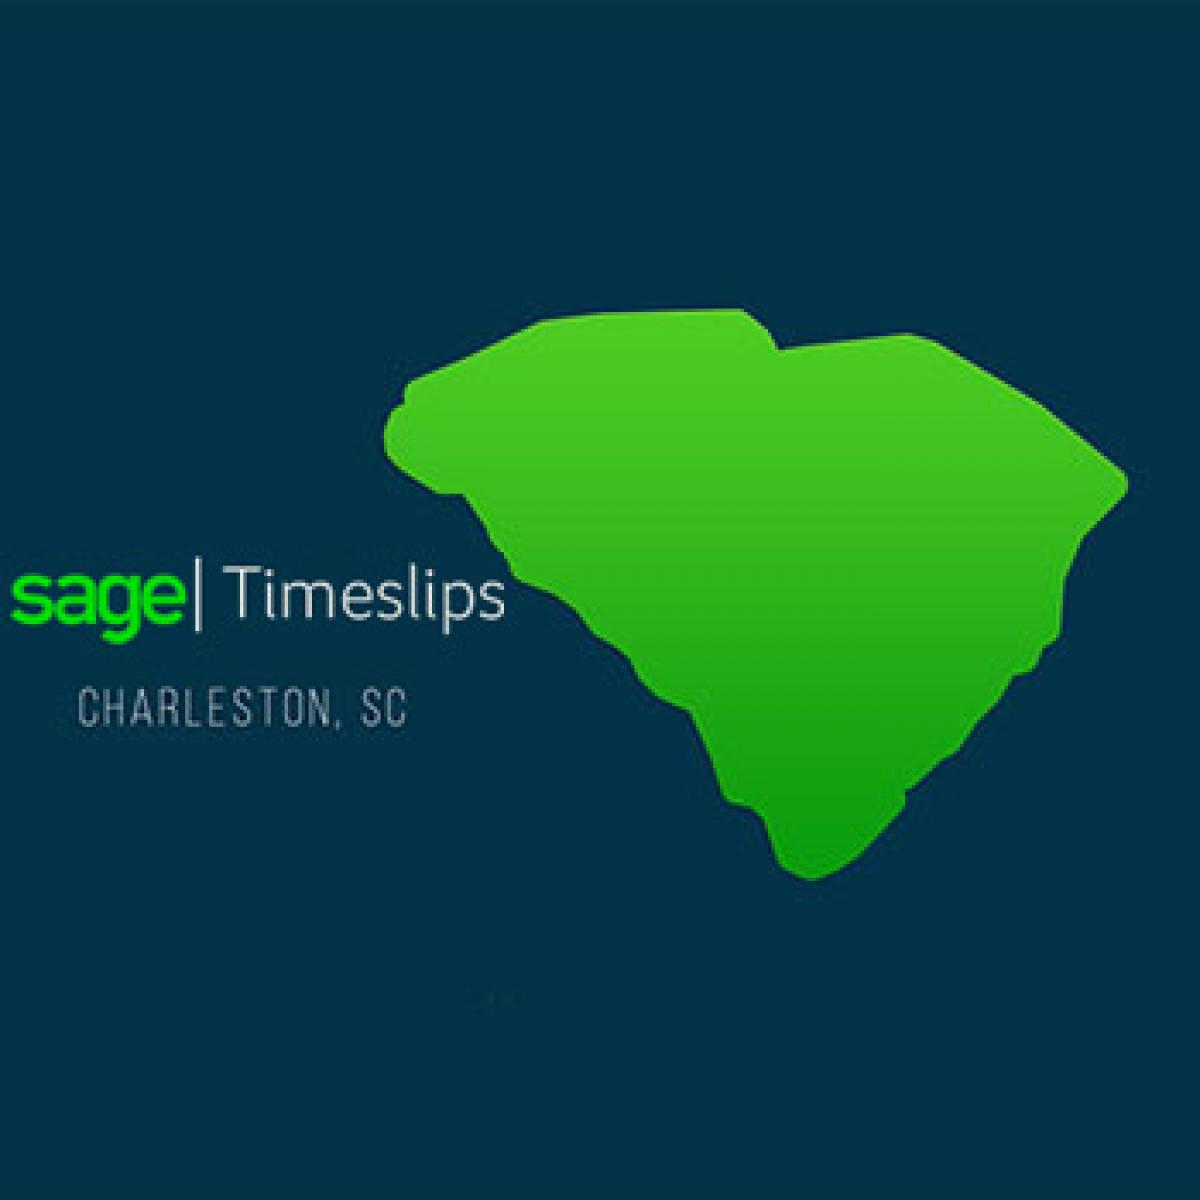 Sage TImeslips Support in Charleston, South Carolina